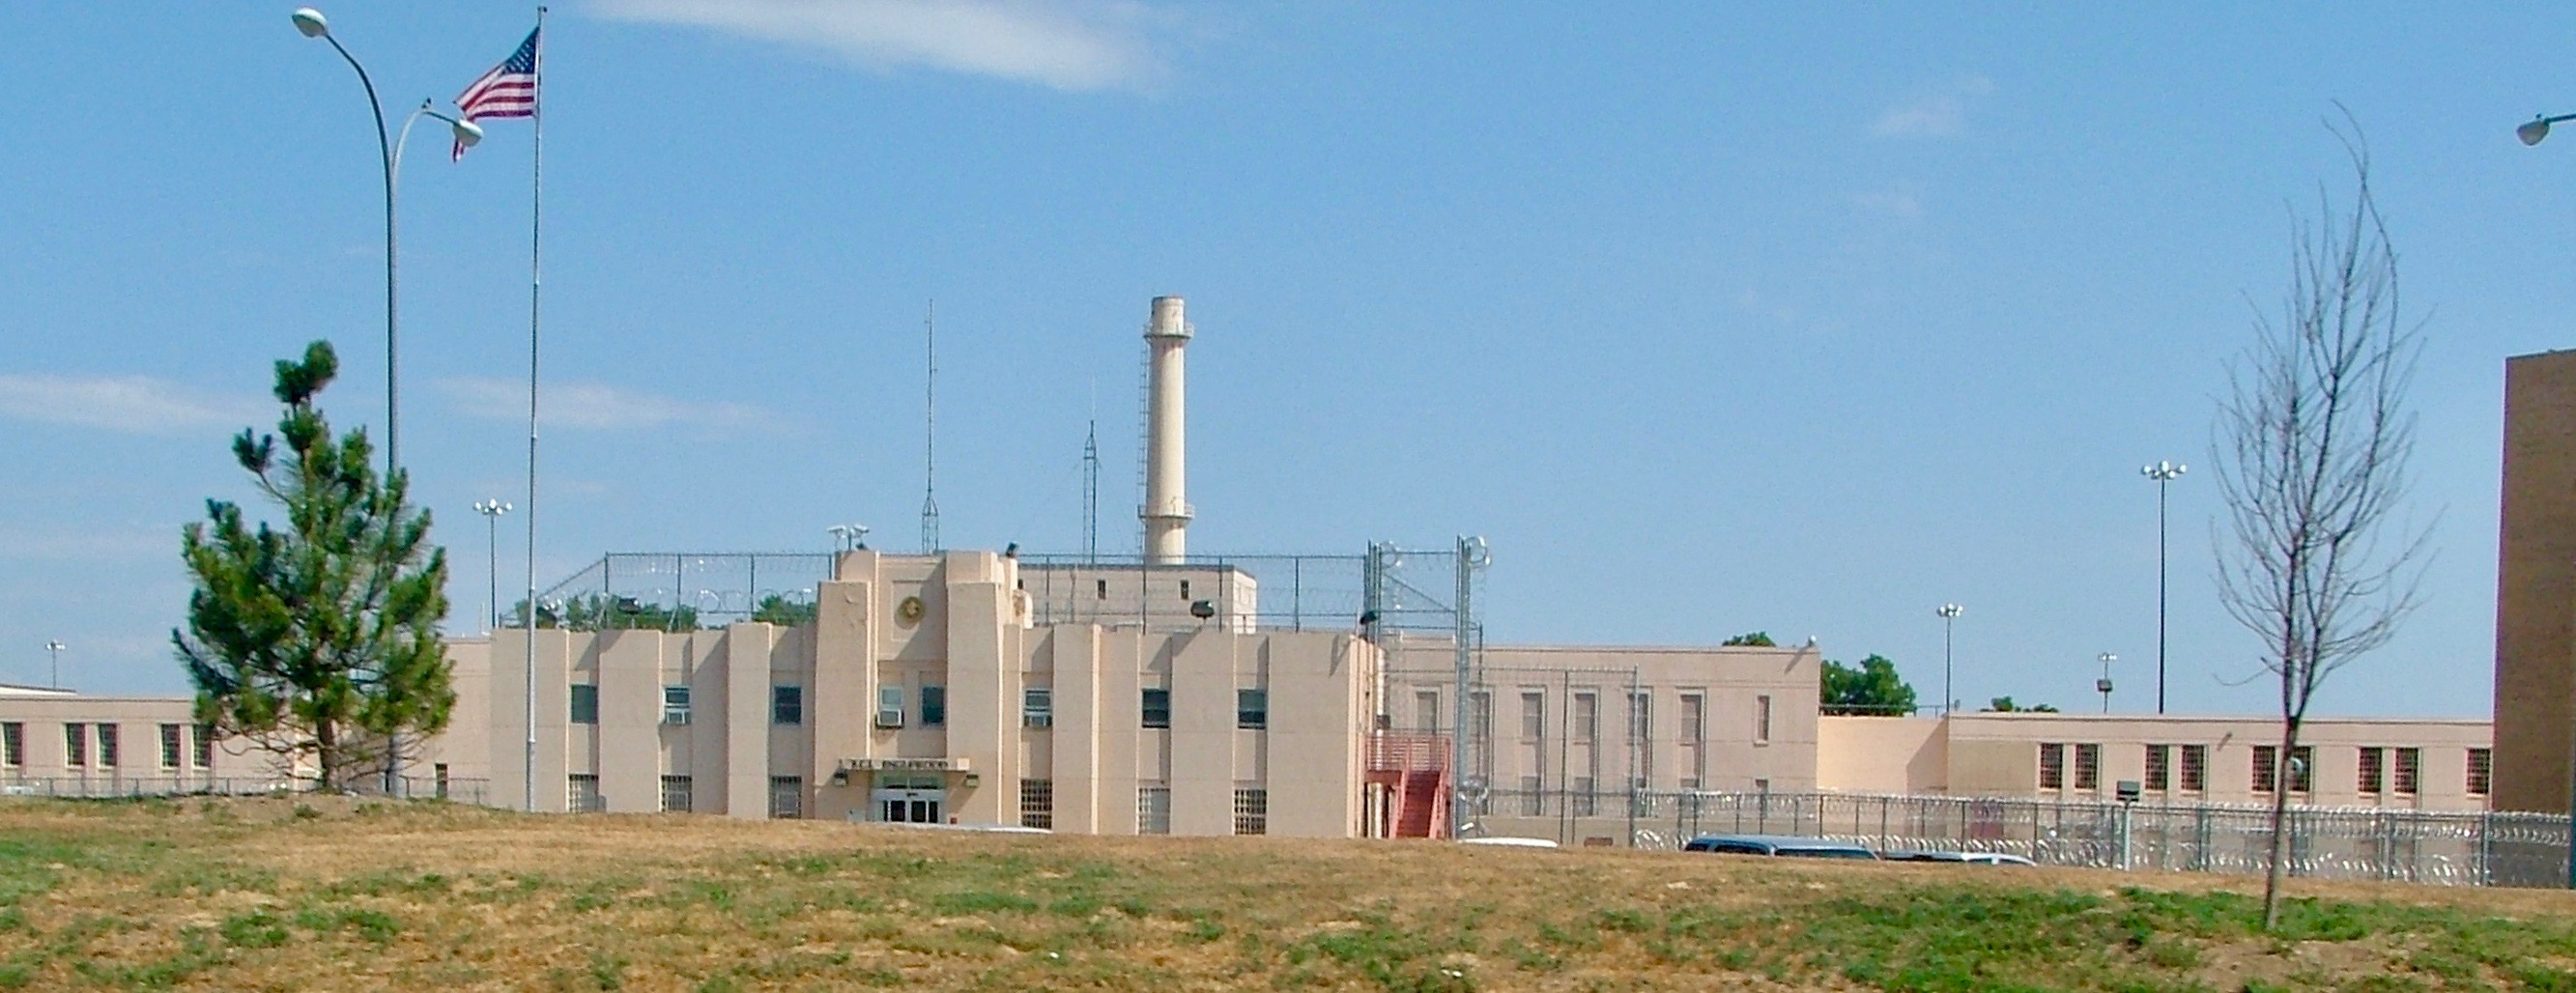 Federal Correctional Institution, Englewood - Wikipedia